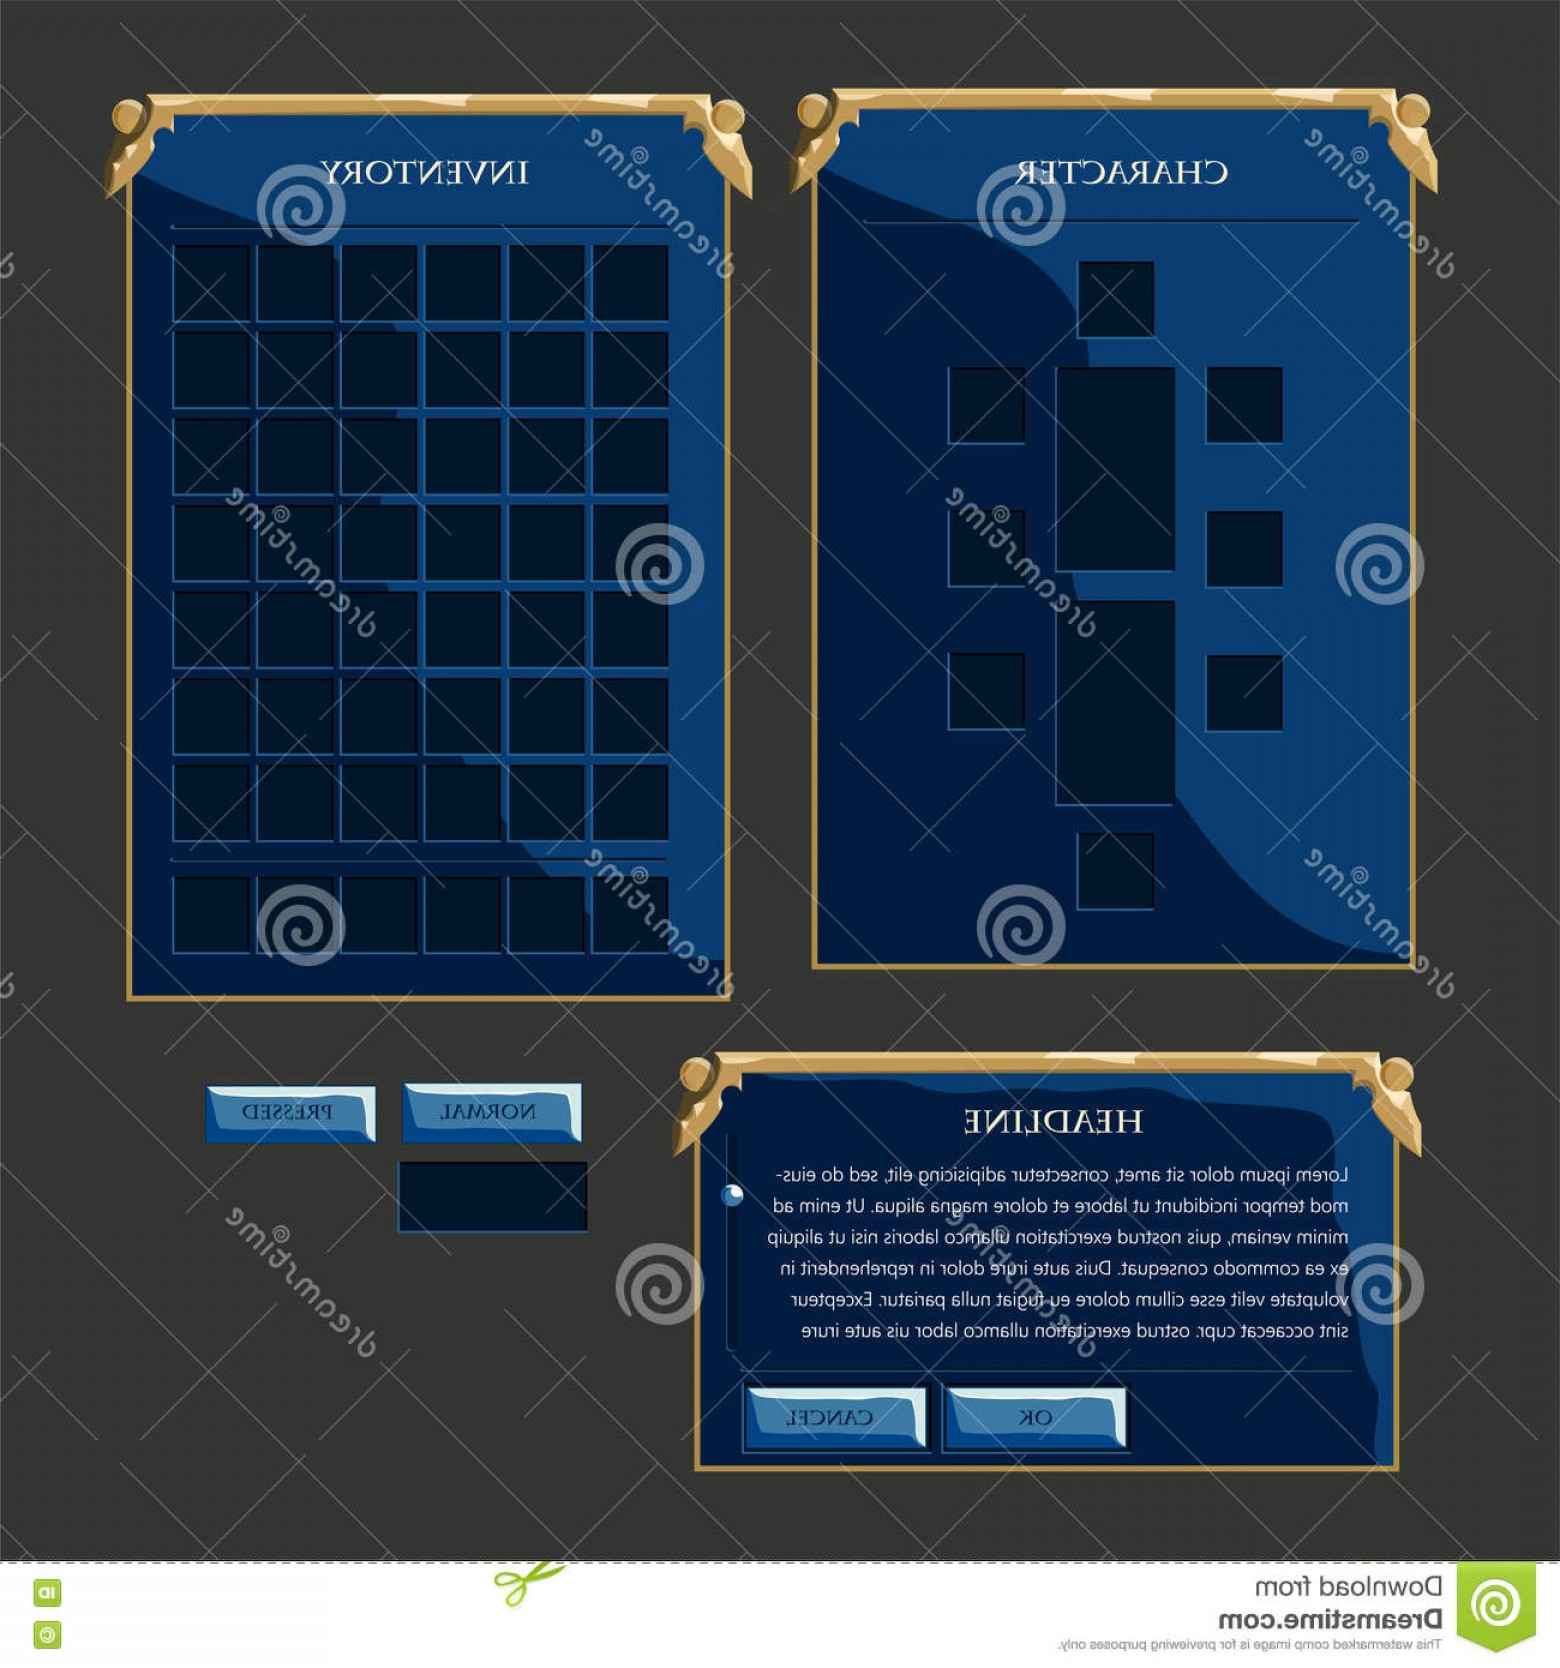 Vectors Buttons And Menus: Set Of Fantasy Vector Interface Elements Illustration